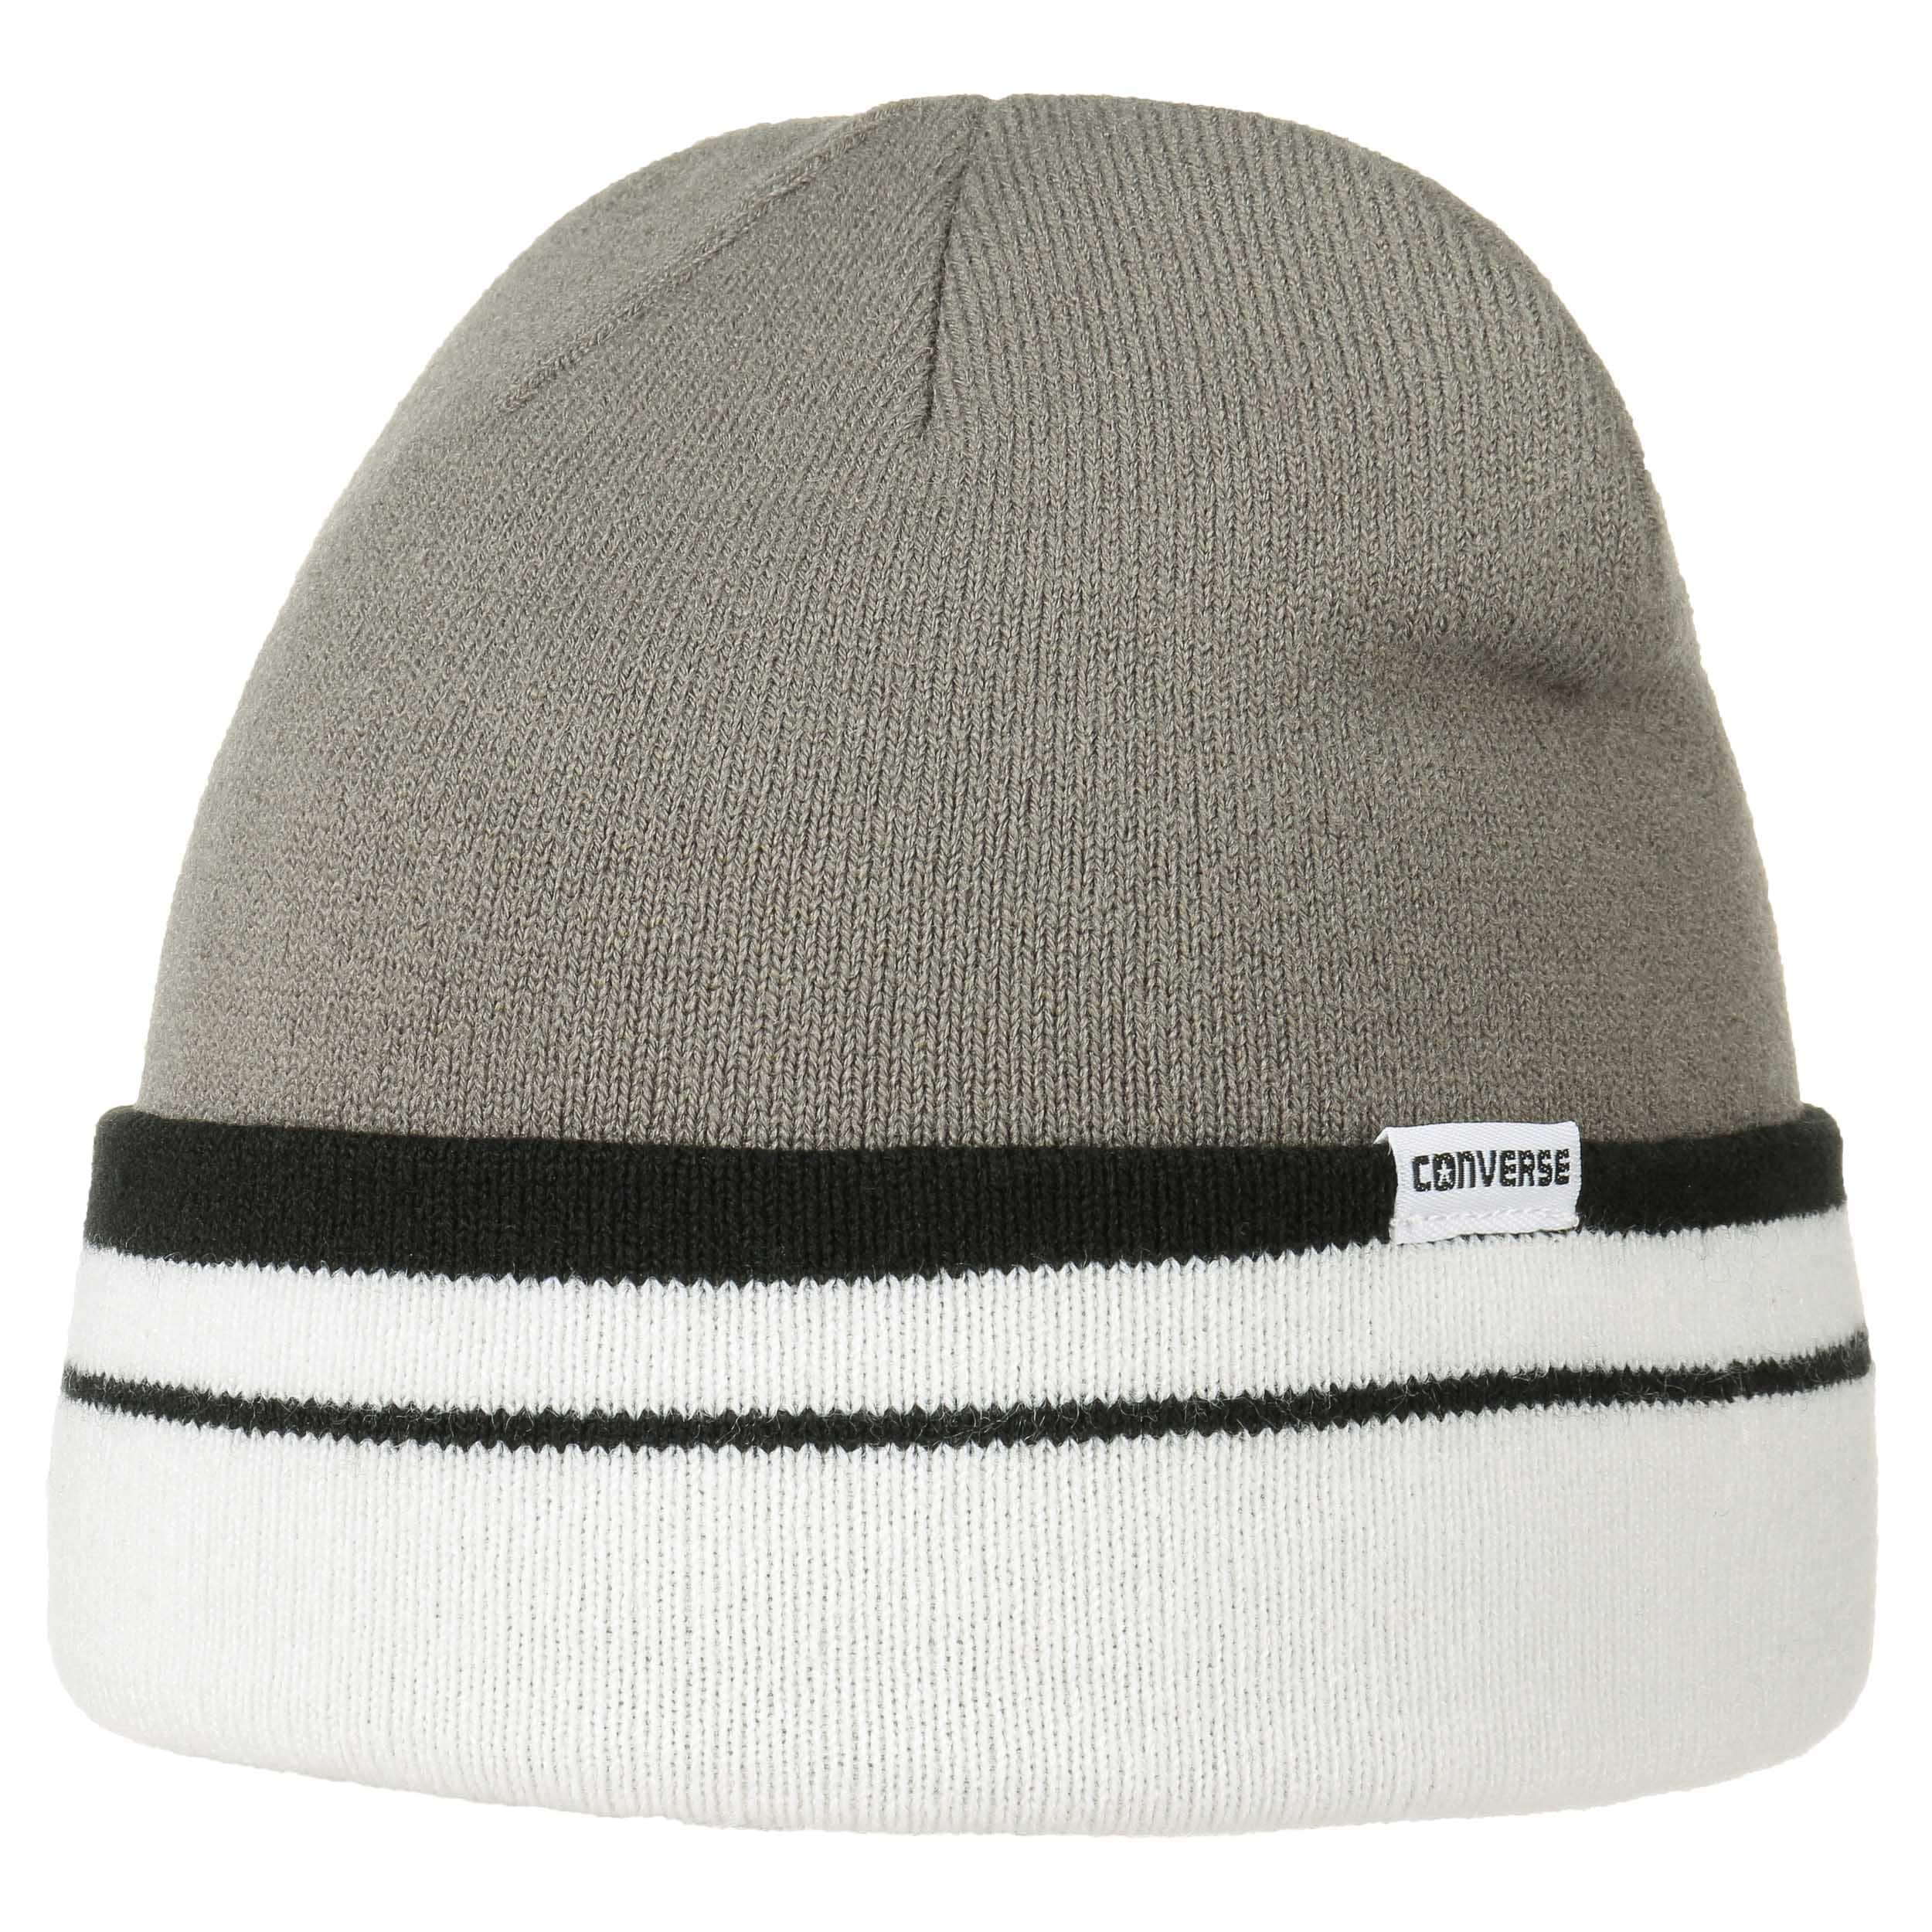 0abf87b2a41 ... Stripes Knit Hat with Cuff by Converse - grey 4 ...